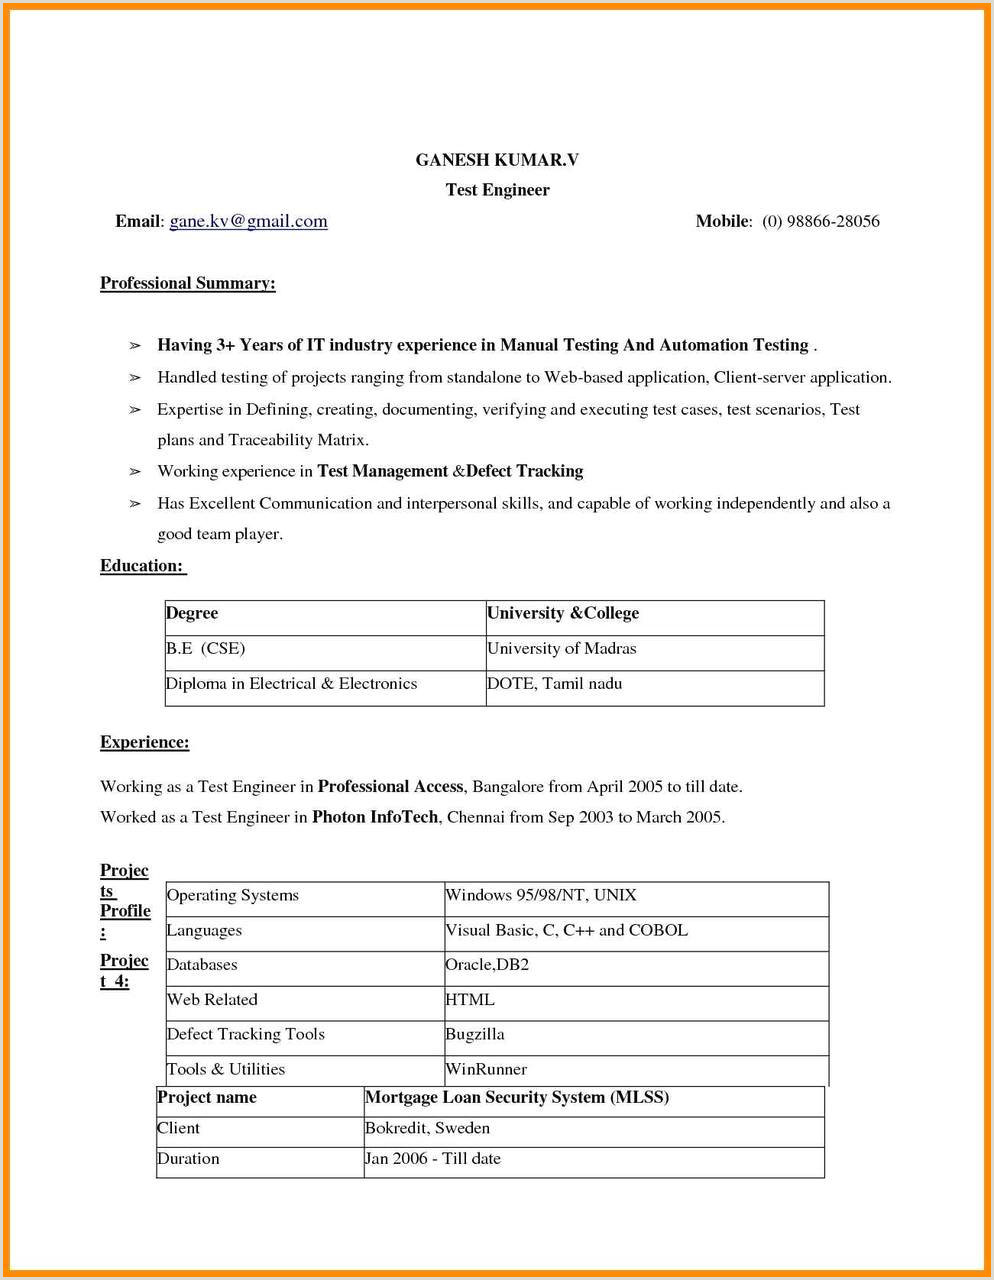 Resume Format Download In Ms Word 2007 For Freshers Free Ms Resume Templates Examples Two Column Resume Template